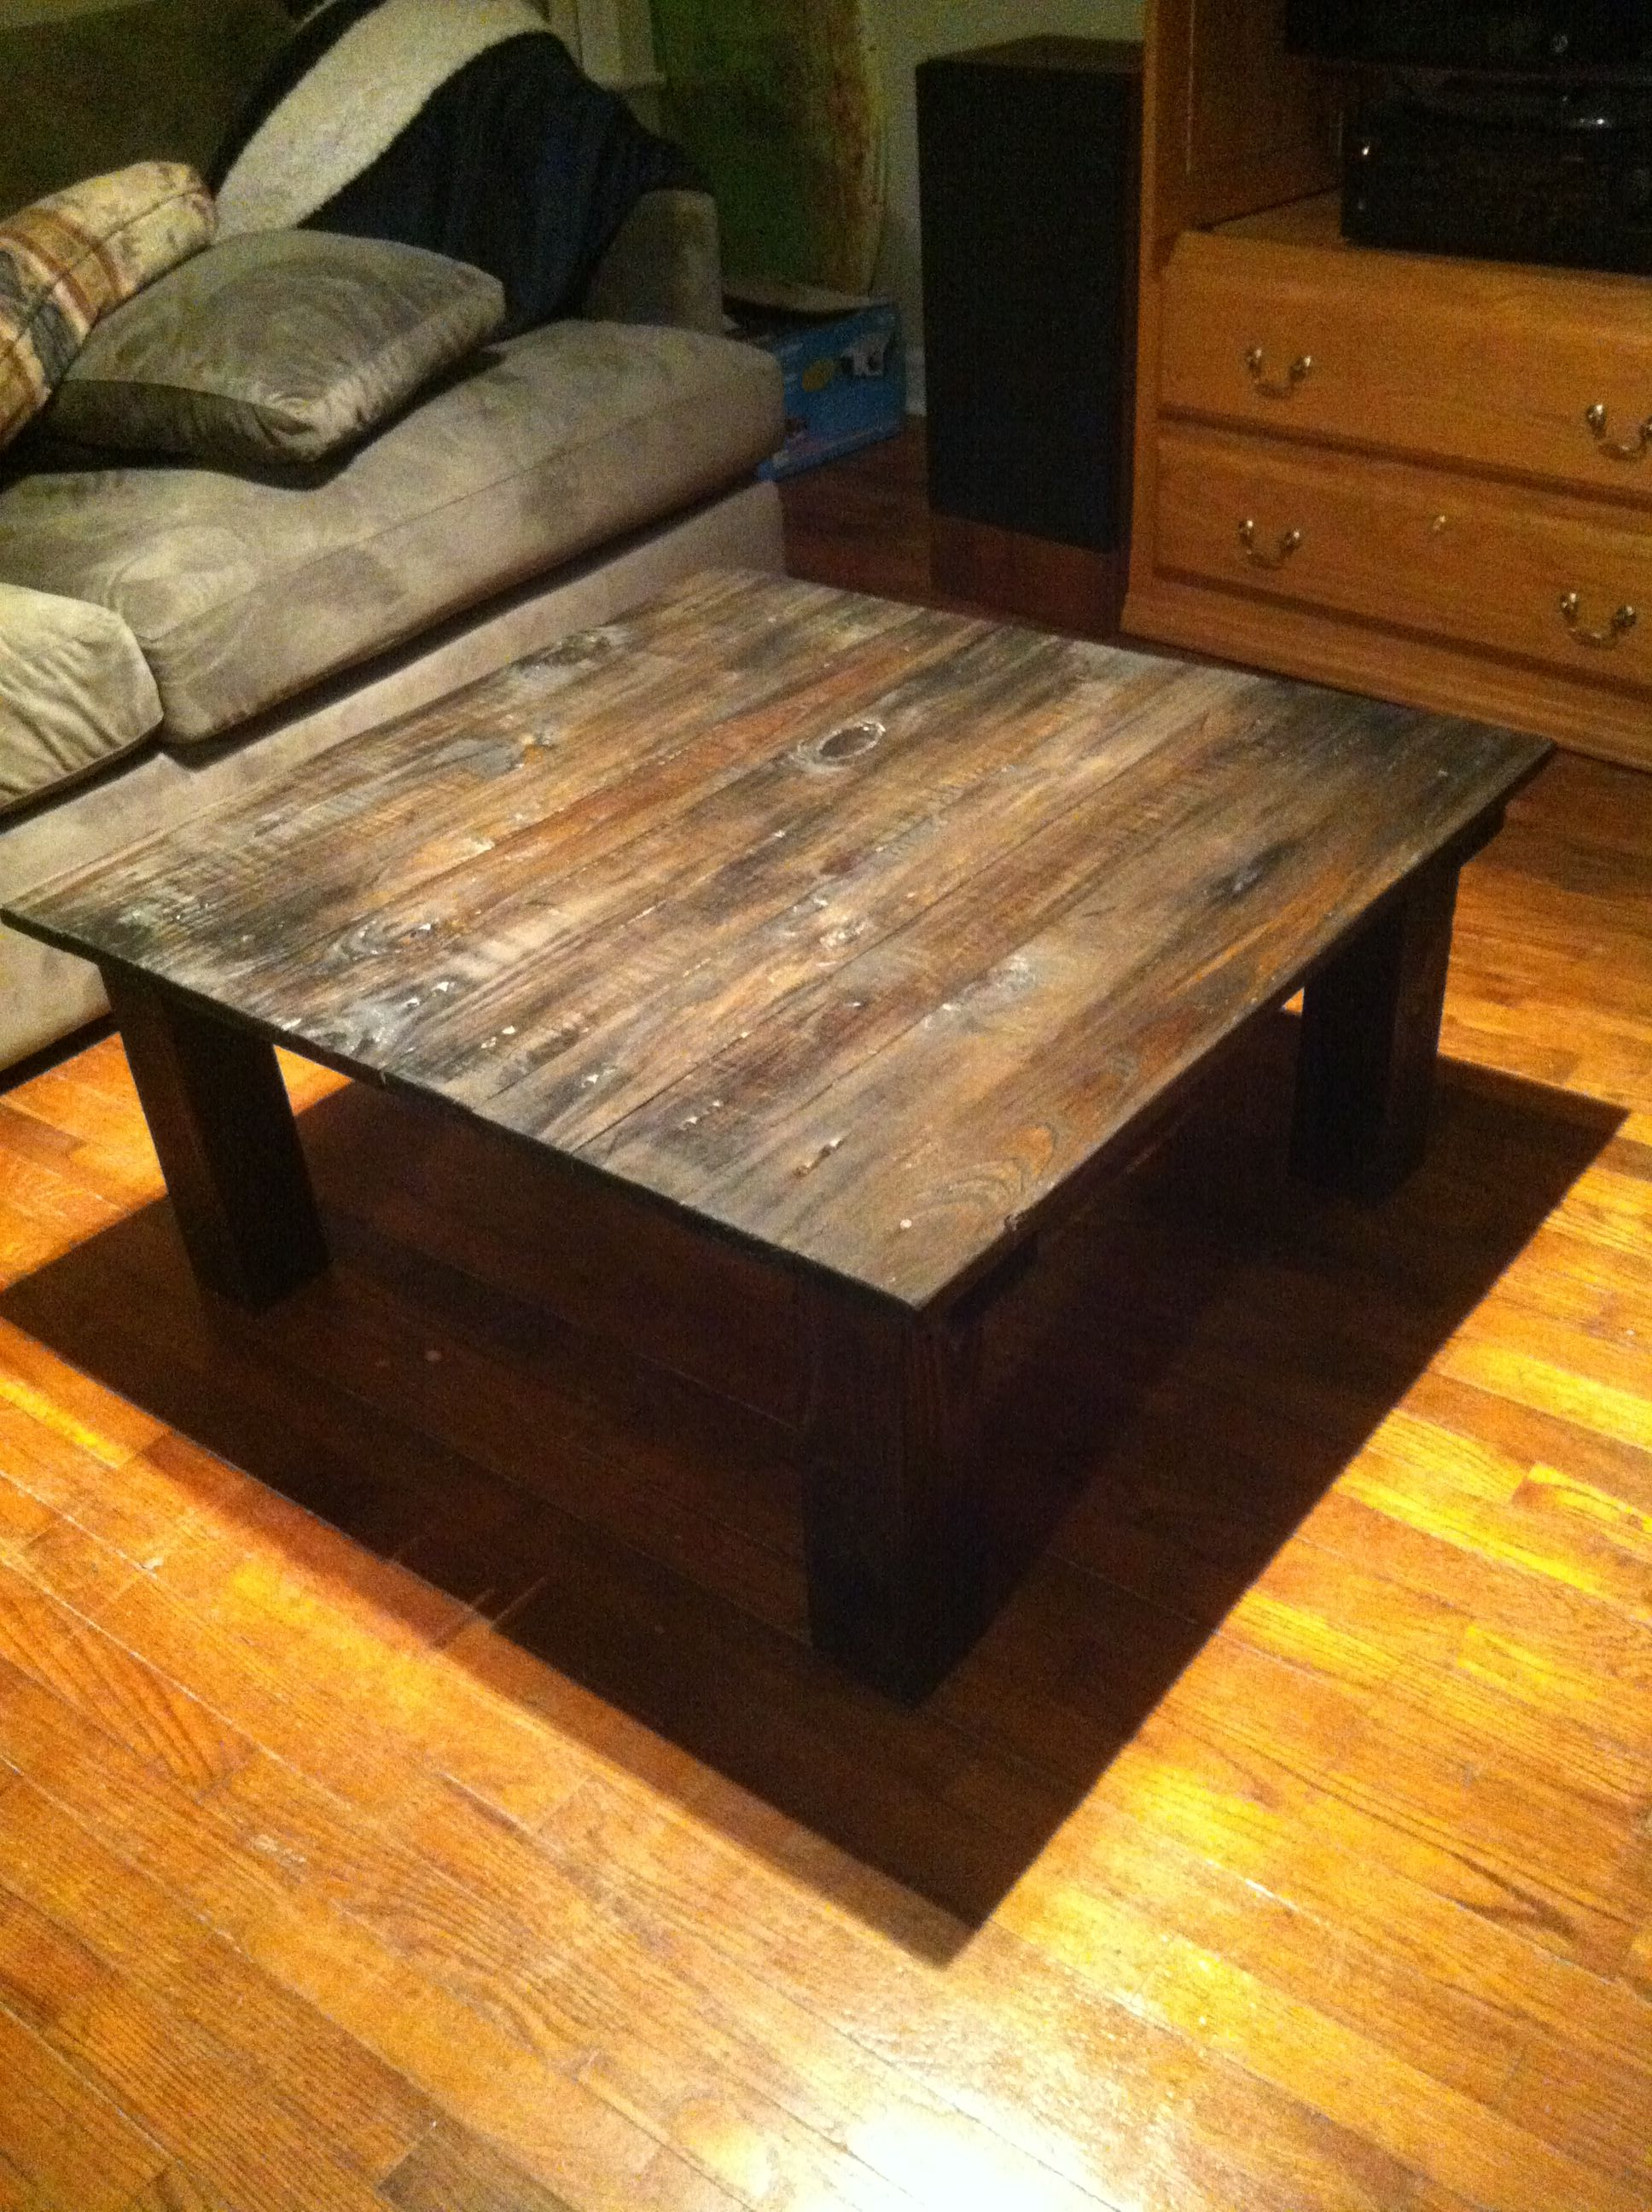 Handcrafted Wooden Coffee Table Diy Supplies 3 12 1x4s 1 8